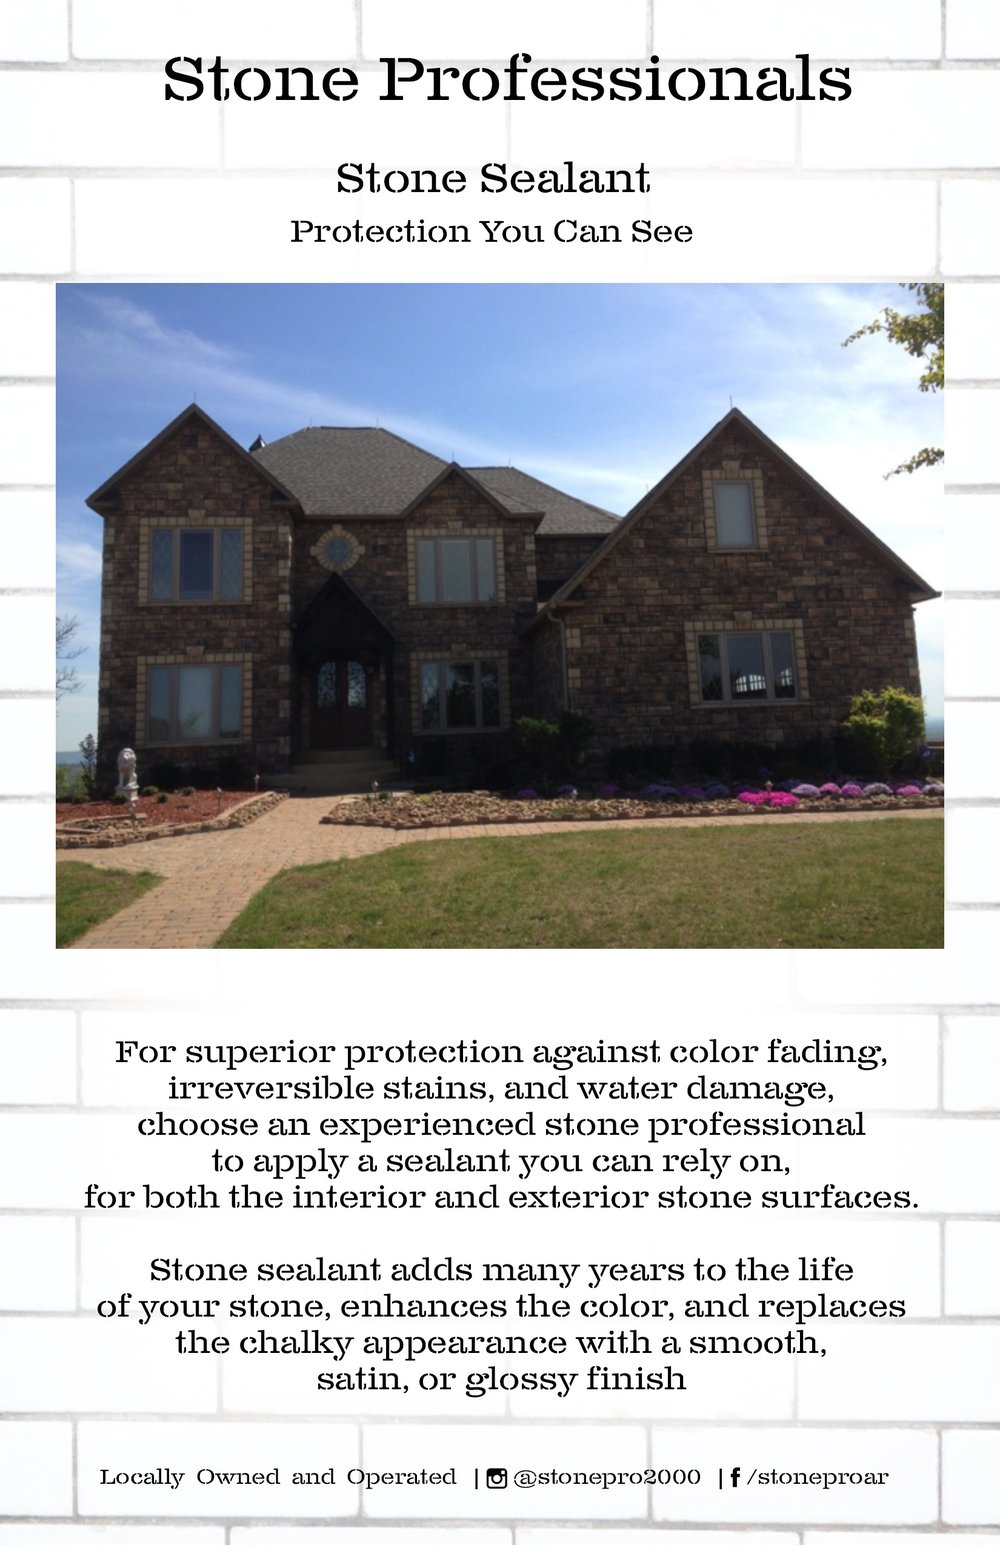 Brochure for local stone finishing company.